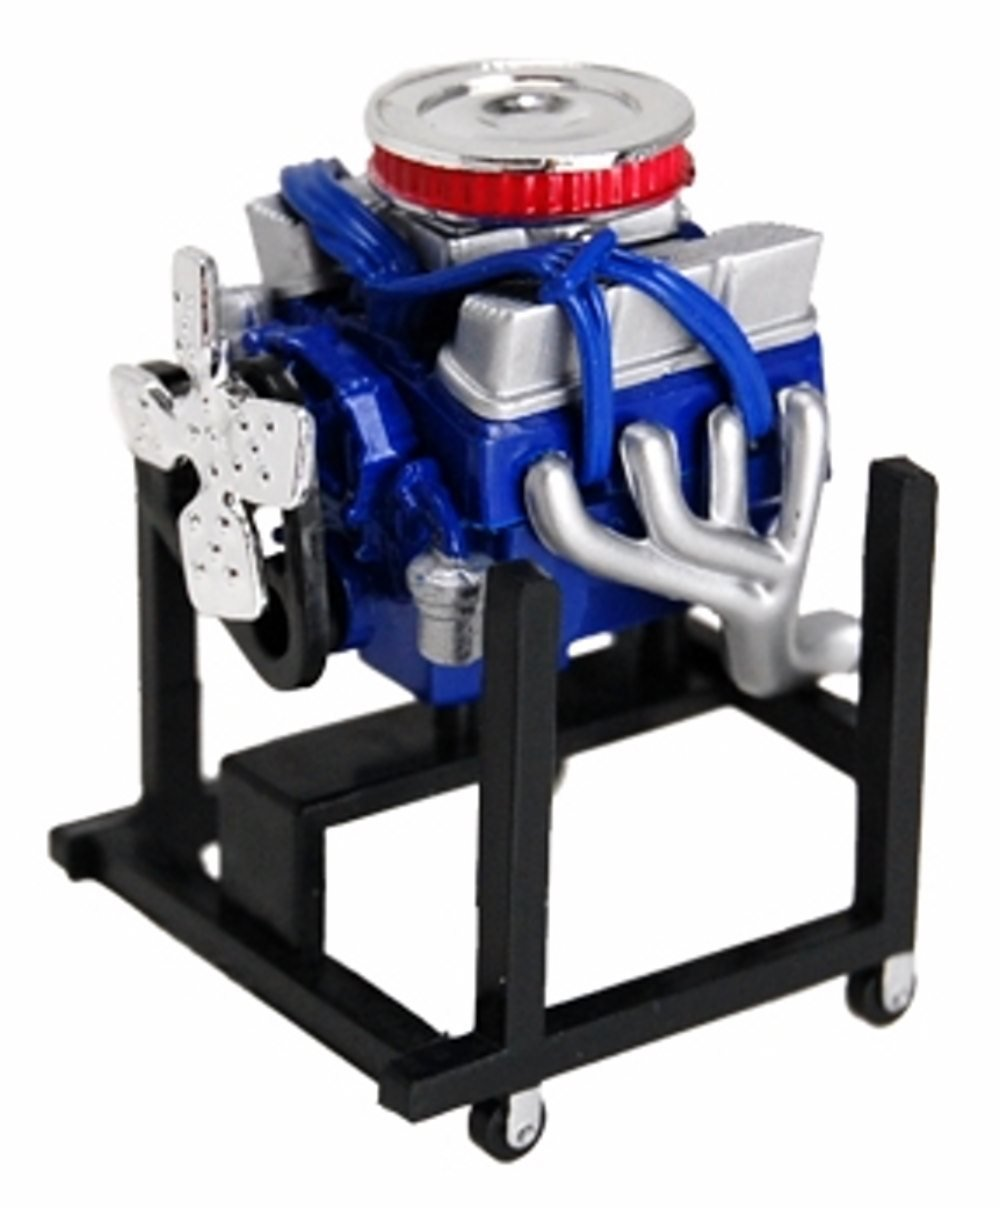 Ford V-8 347 Small Block Engine, Blue - Phoenix Toys 28009M - 1:24 Scale Diecast Model Engine Diorama Accessory